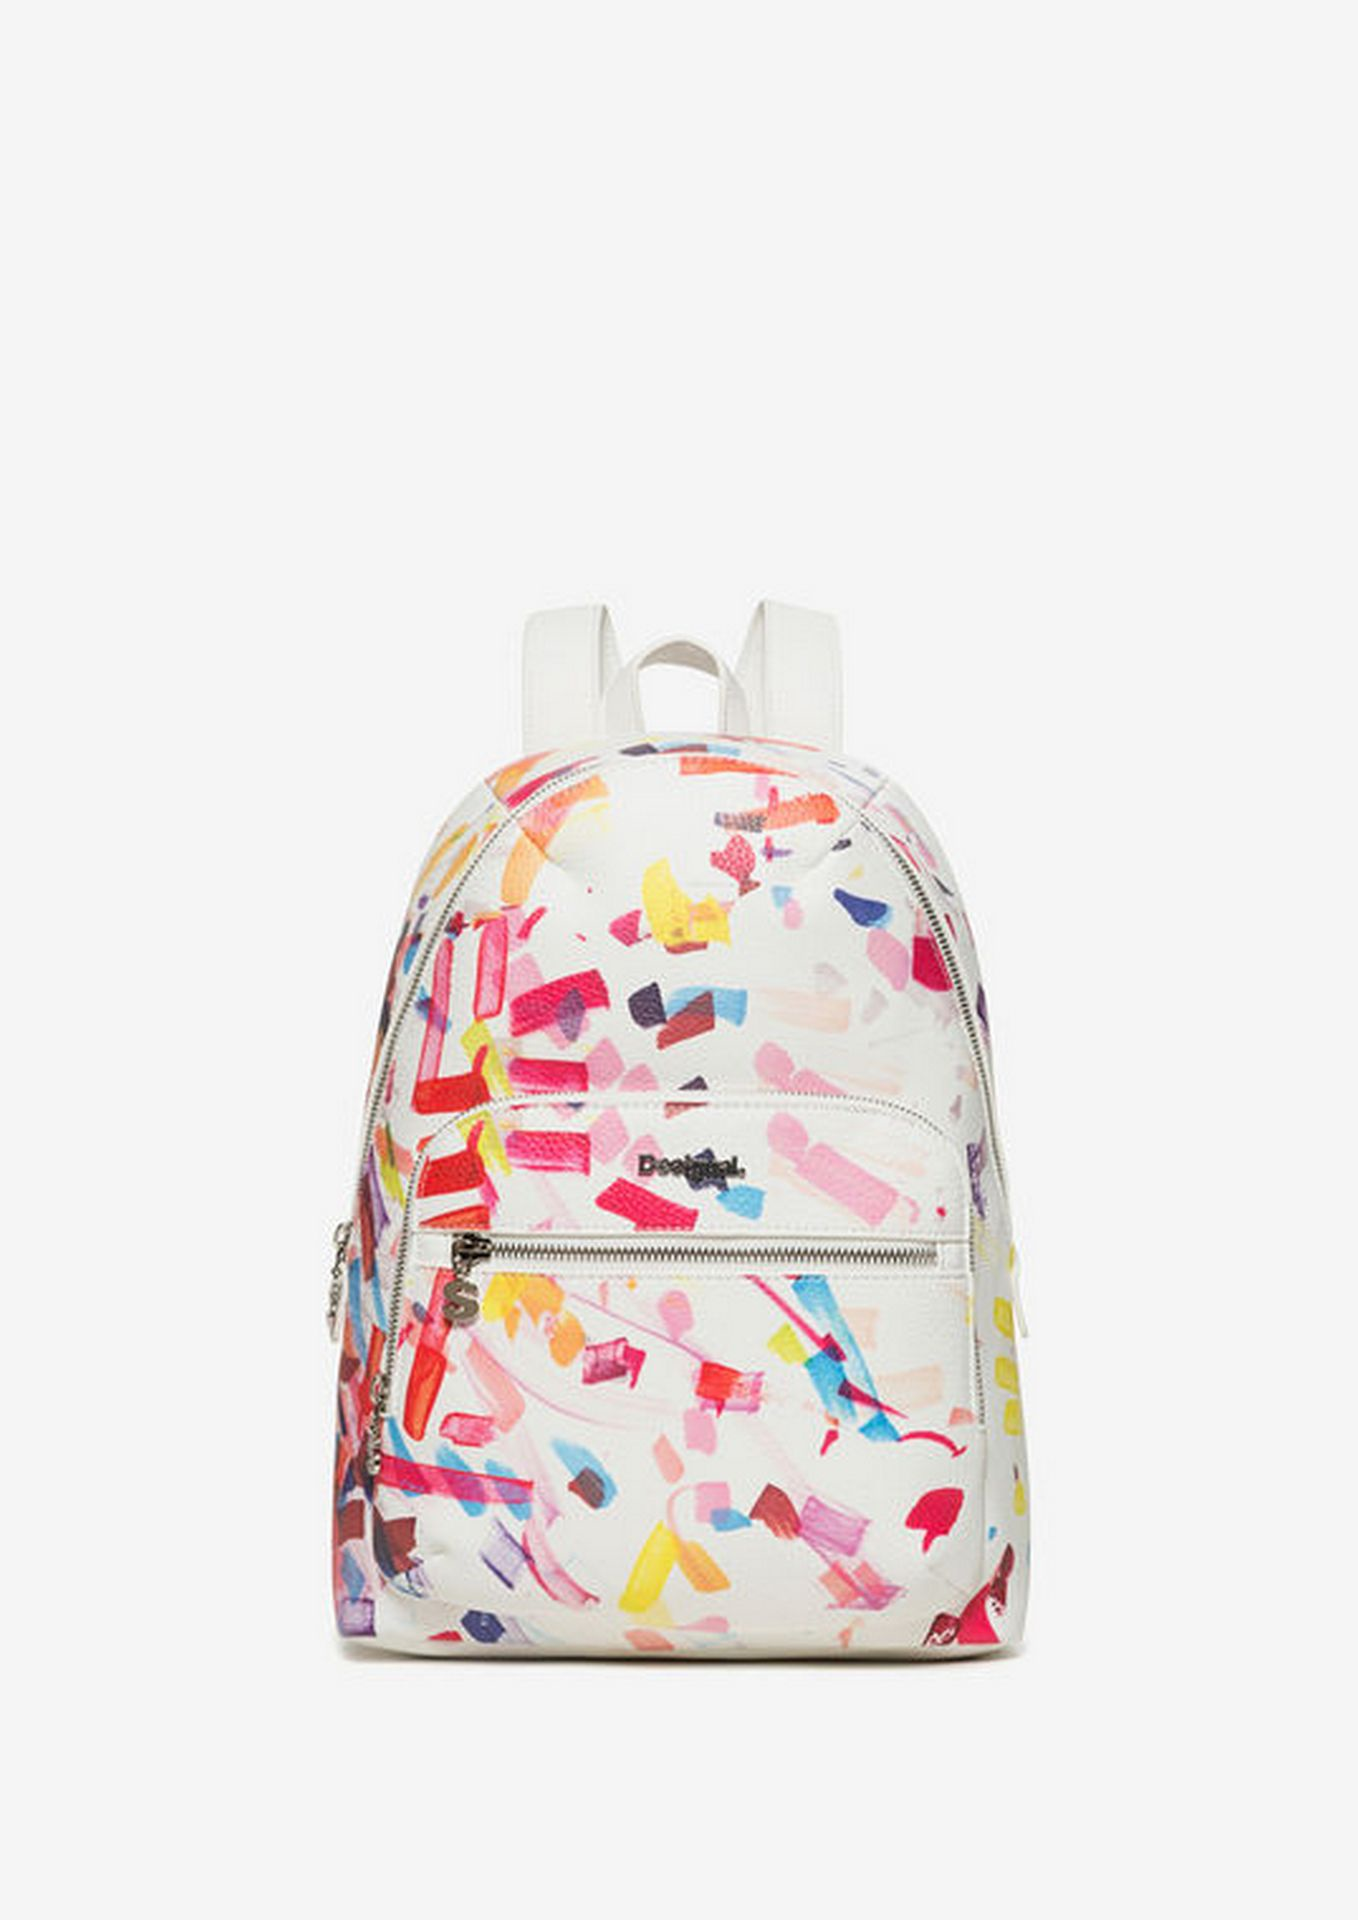 top design look out for 100% genuine DESIGUAL BACKPACK - CONFETTI LIMA pink